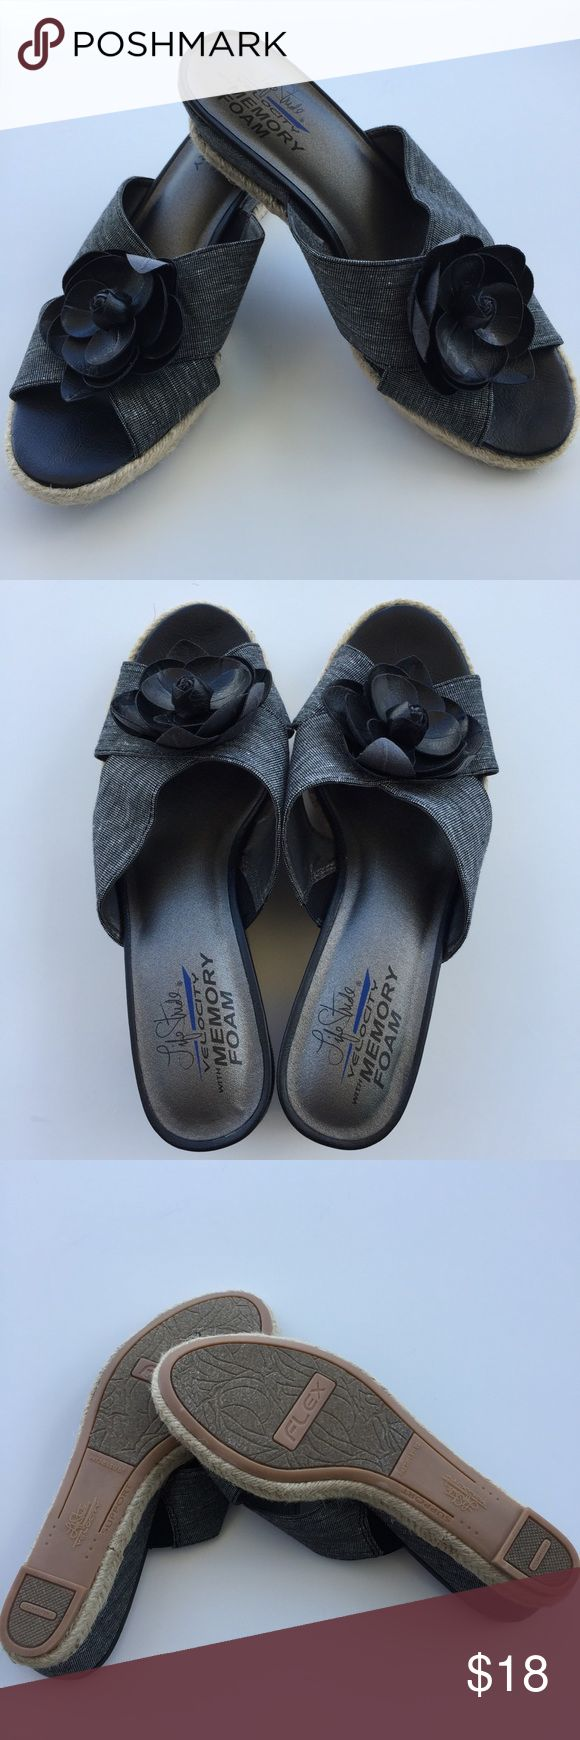 💞Sale💞Life Stride Wedge Sandals 👇PLZ READ THE COMPLETE DESCRIPTION BEFORE COMMENTING! Thank u!👇  Brand new, never worn, no shoe box Size:8W With memory foam Color may be slightly different bcz of lighting  🍀Price is FIRM unless bundled🍀 ❌Trades ❌Holds All sales r final Welcome product-related questions! Ur responsible for ur size. Life Stride Shoes Sandals